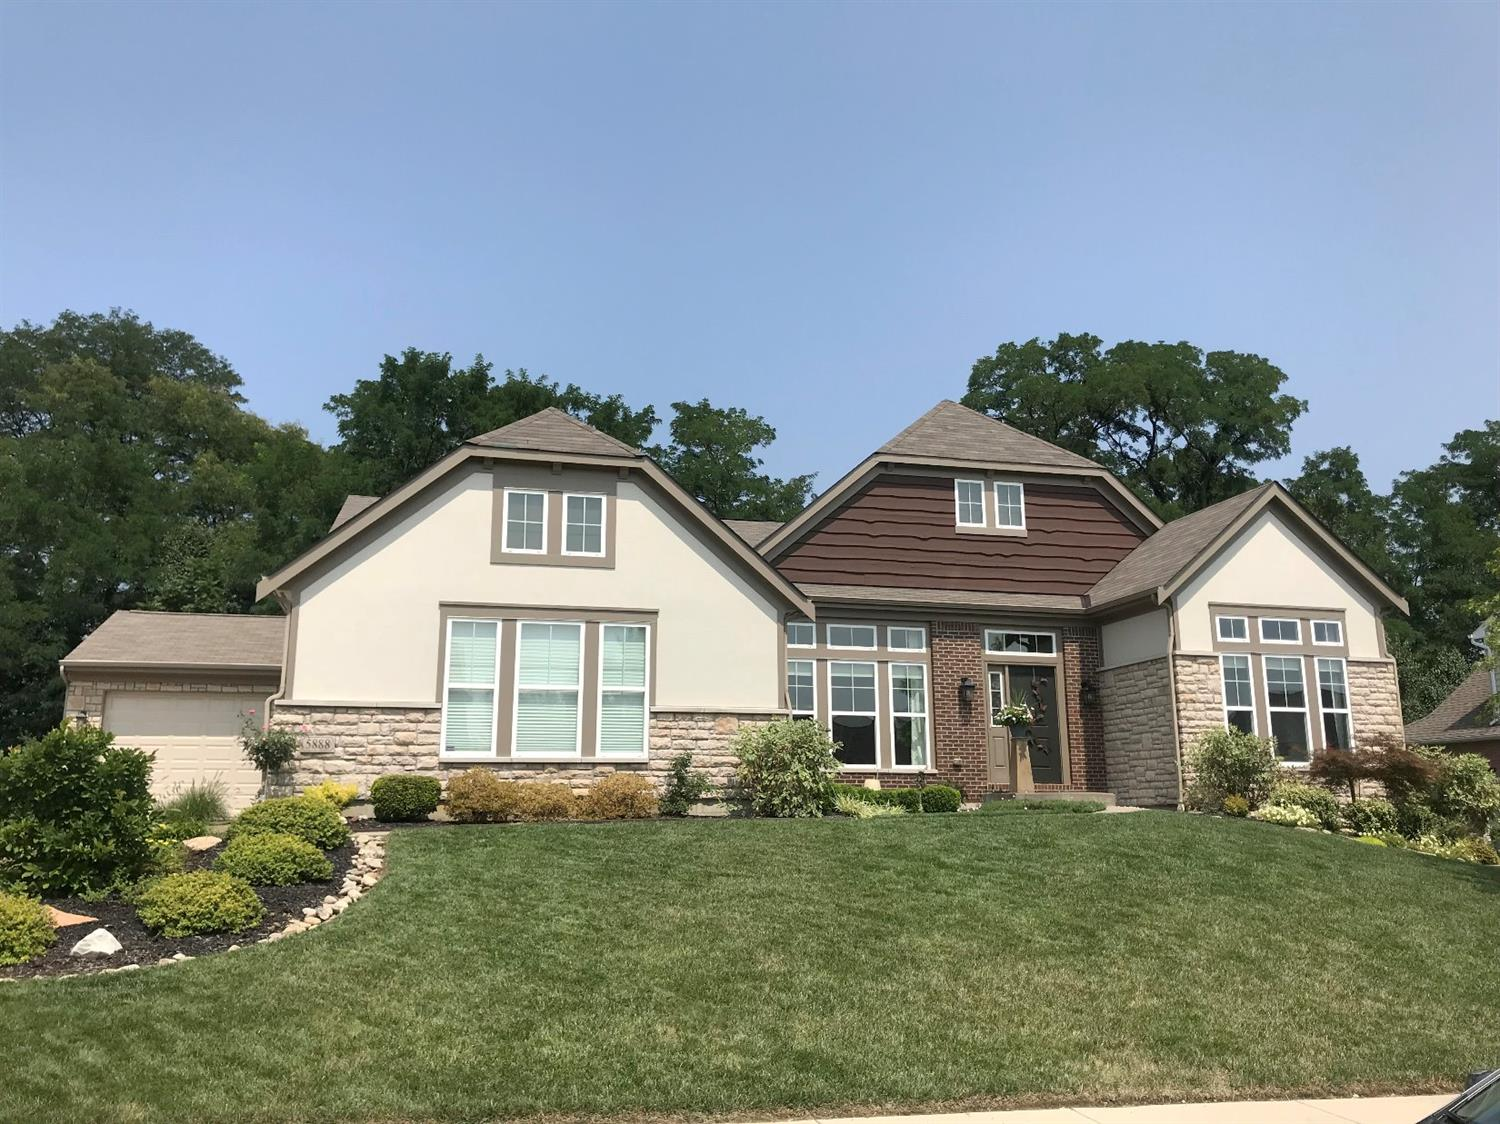 5888 Emerald Lake Dr Fairfield, OH